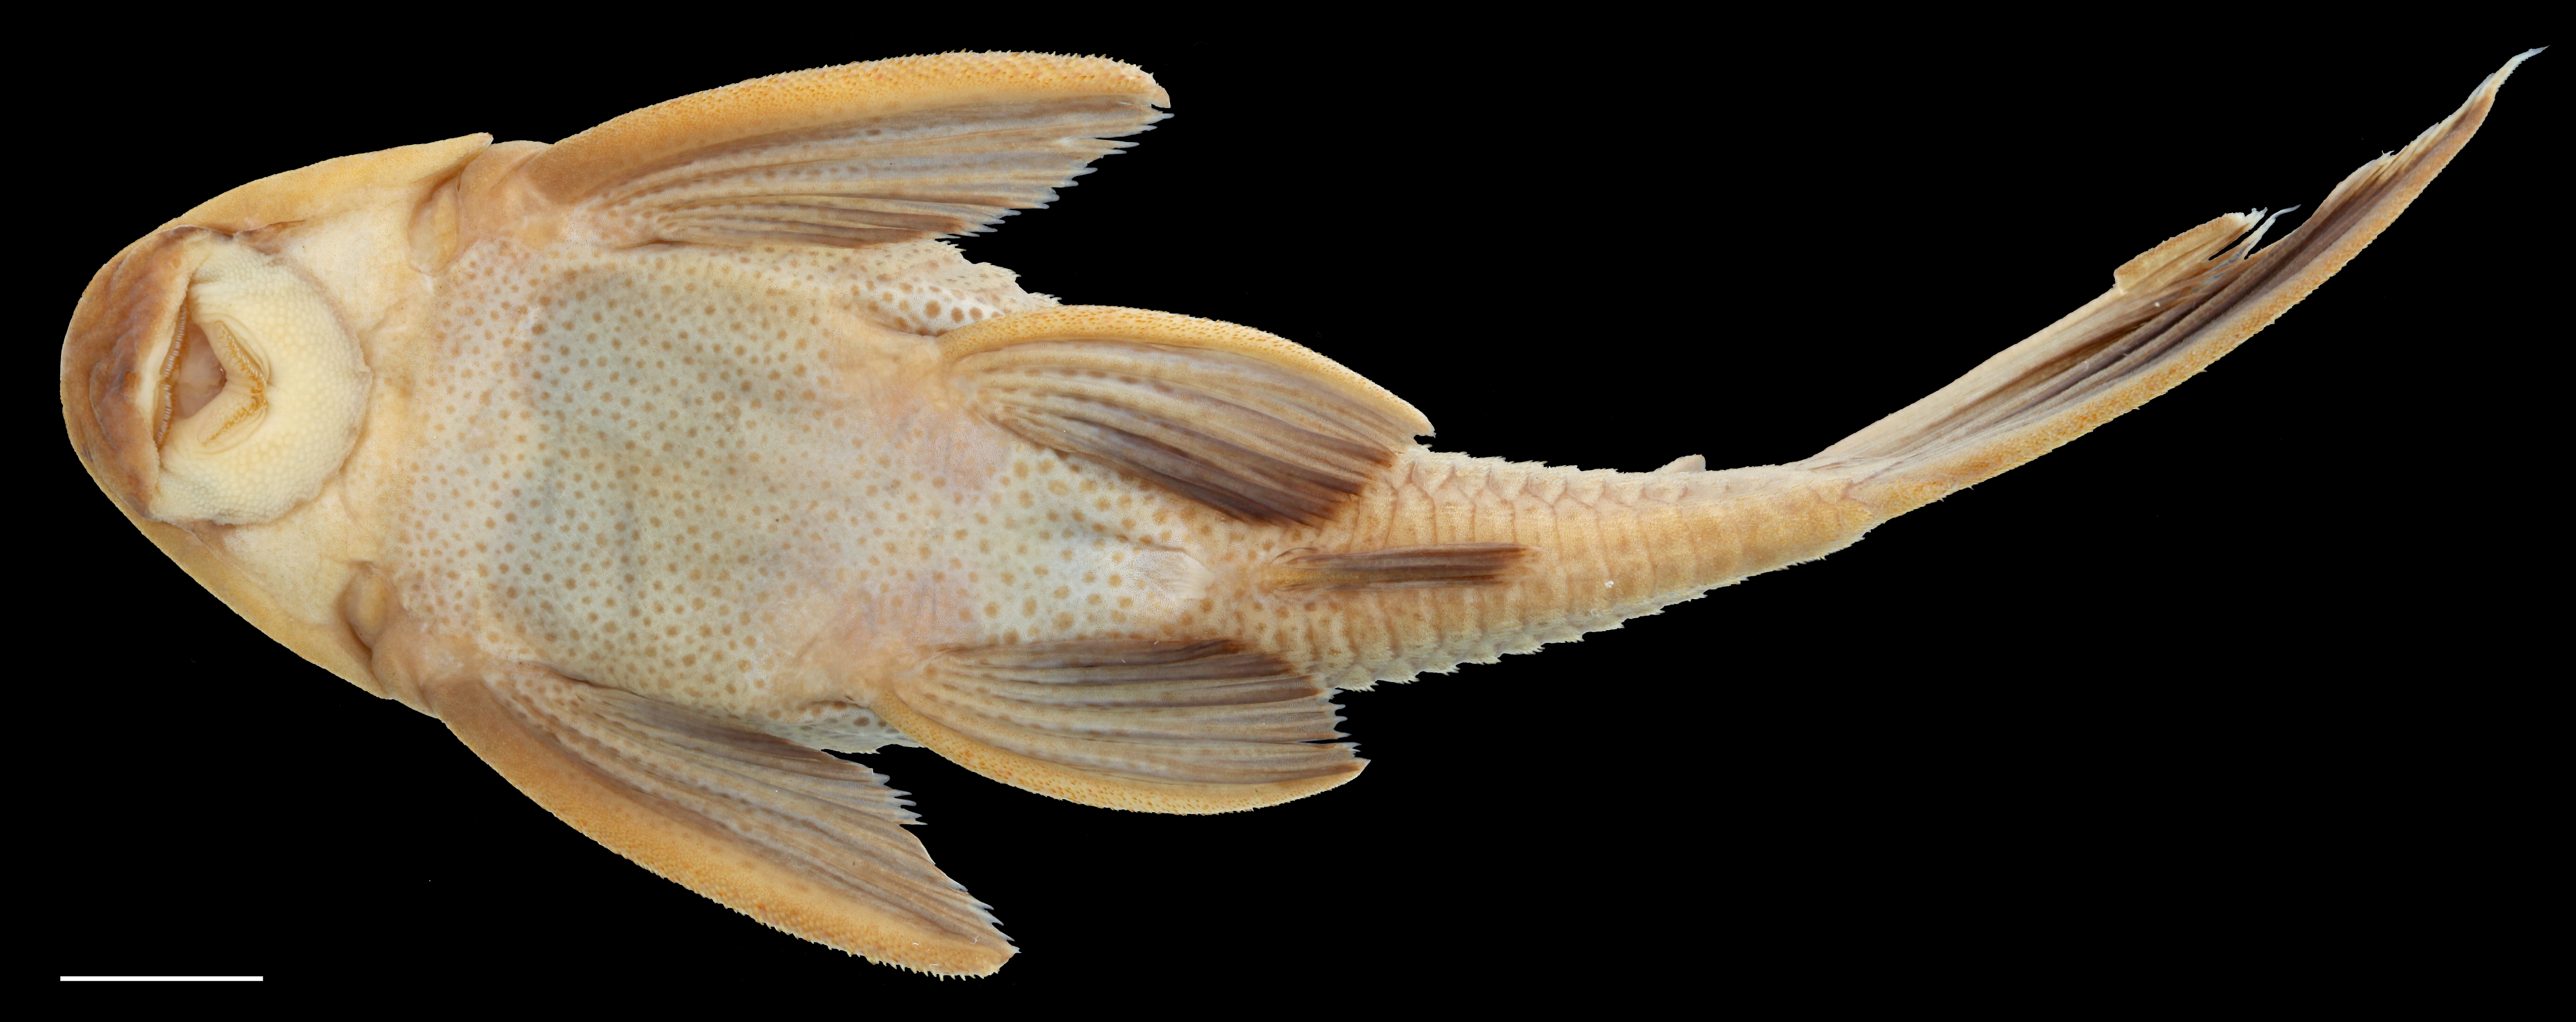 Paratype of <em>Hypostomus rhantos</em>, IAvH-P-13958_Ventral, 87.7 mm SL (scale bar = 1 cm). Photograph by C. DoNascimiento